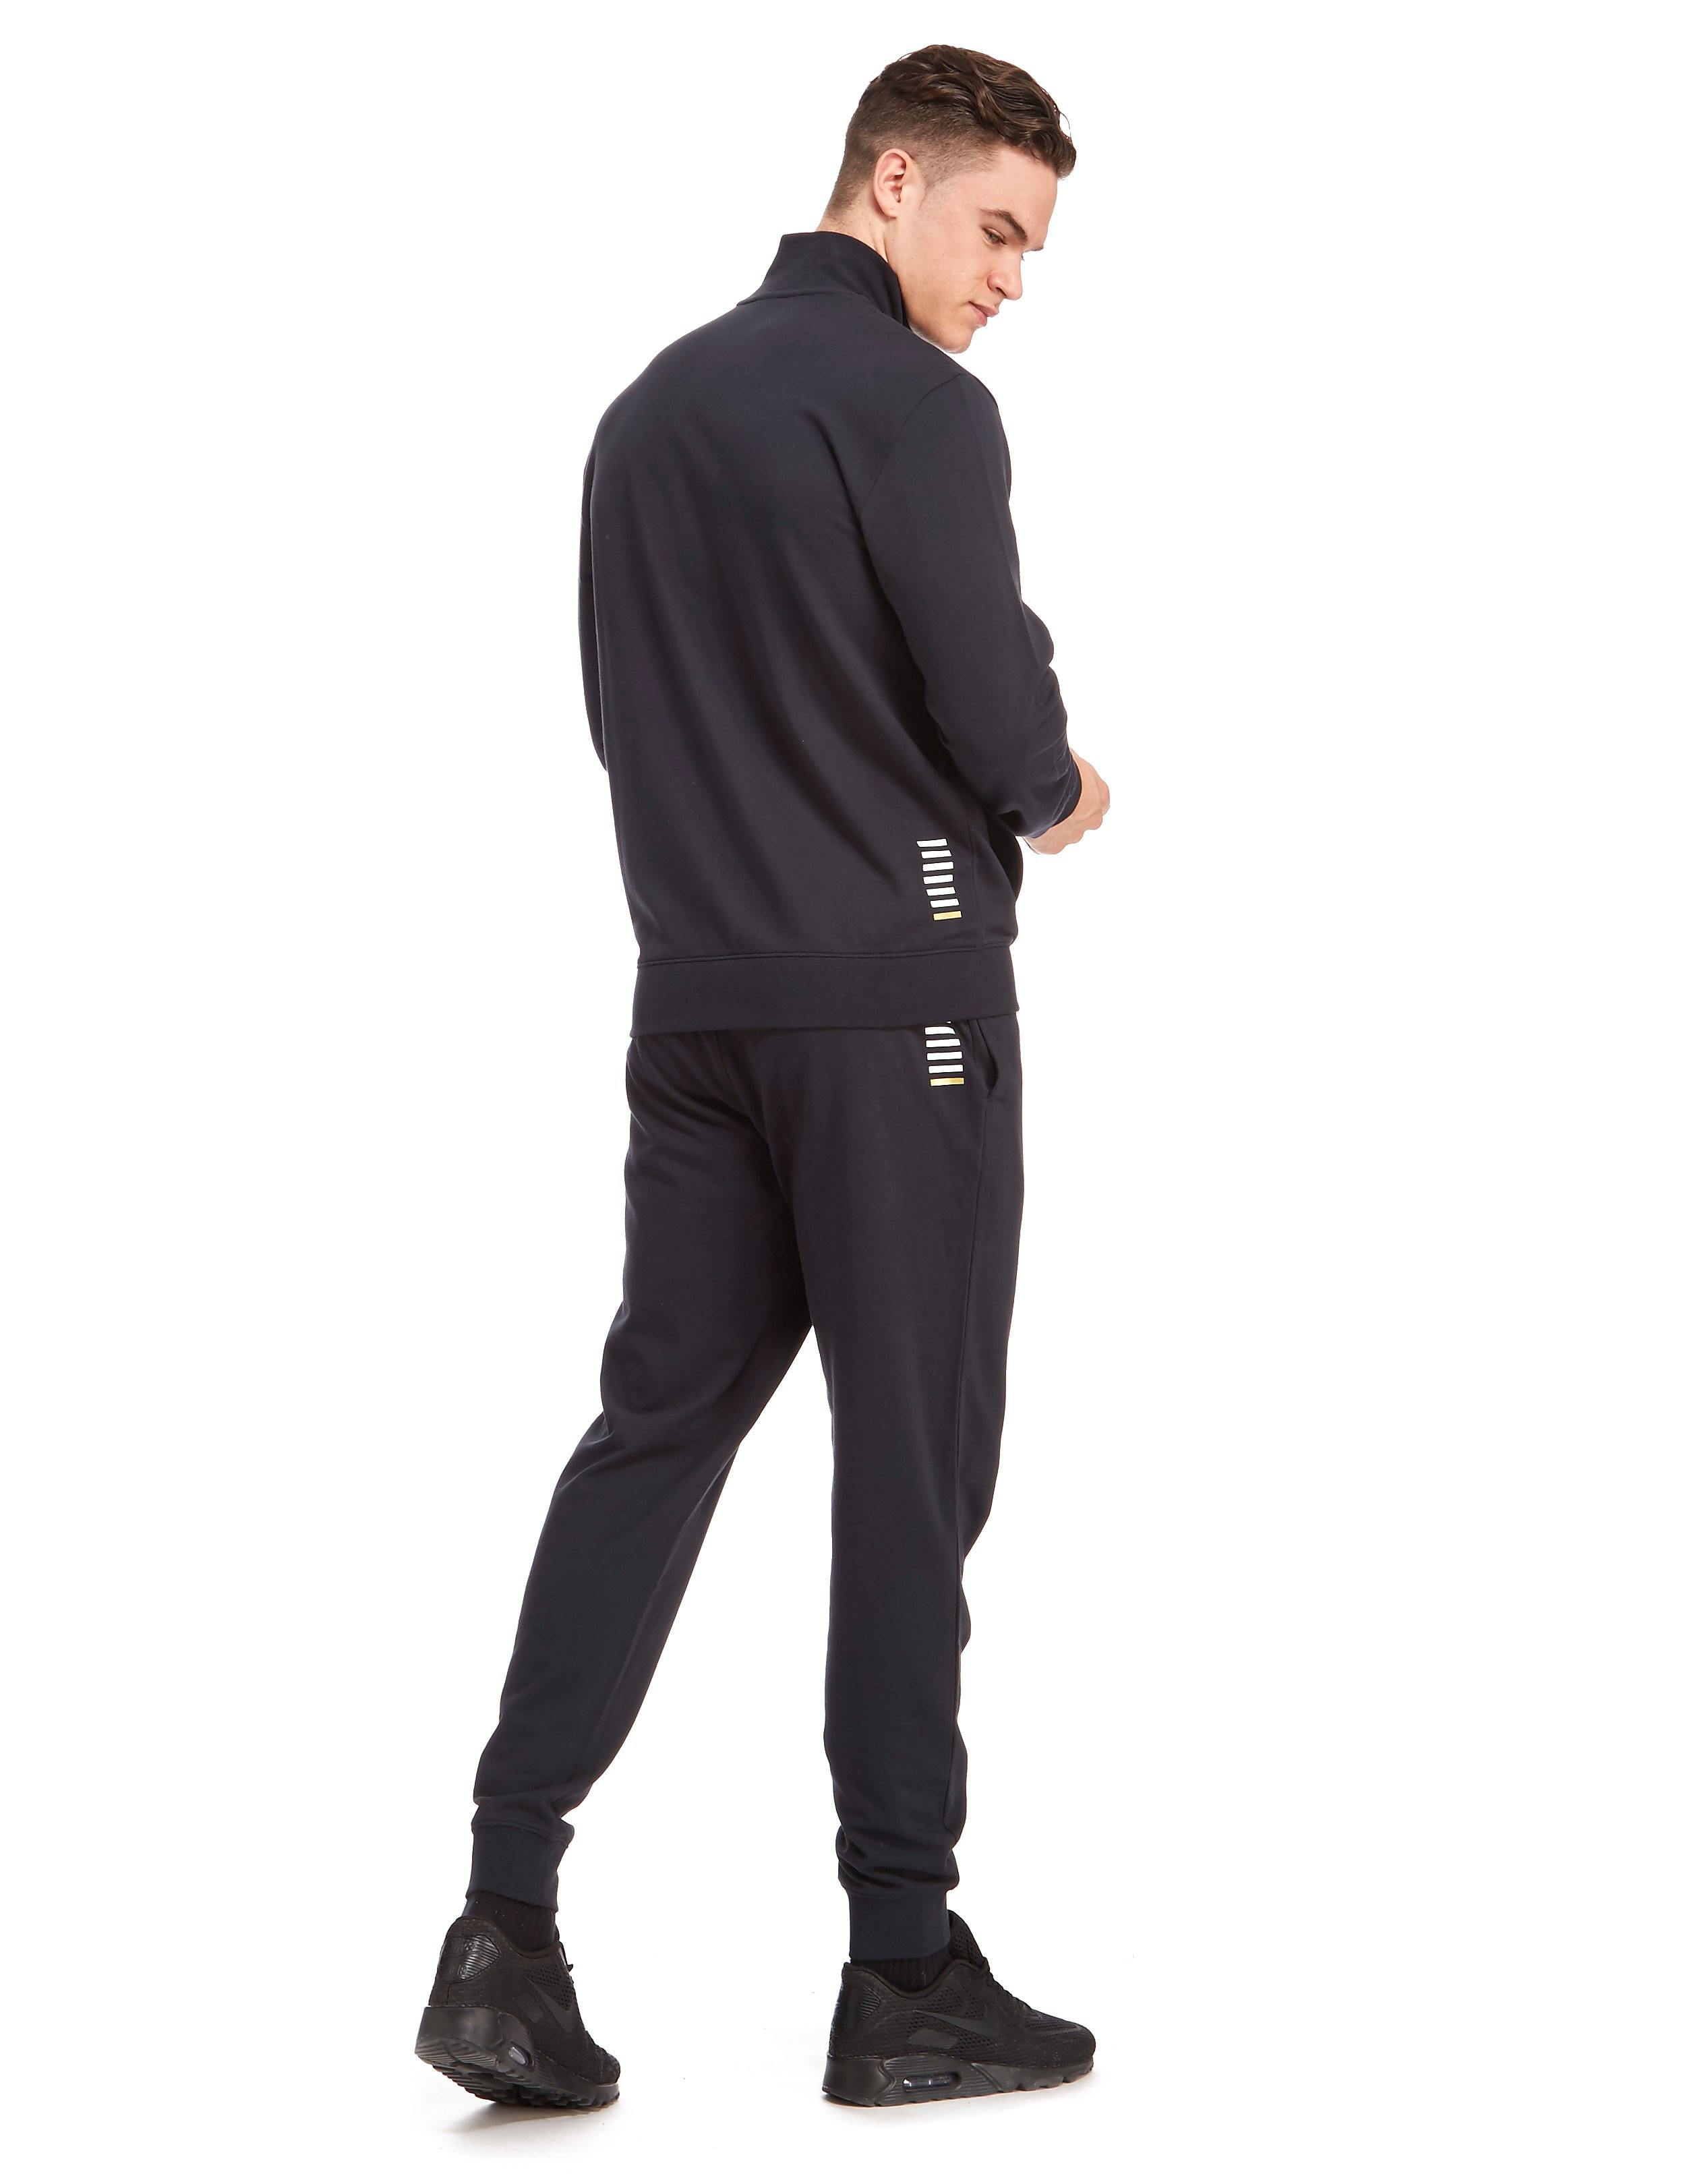 Emporio Armani EA7 Core Track Top Suit